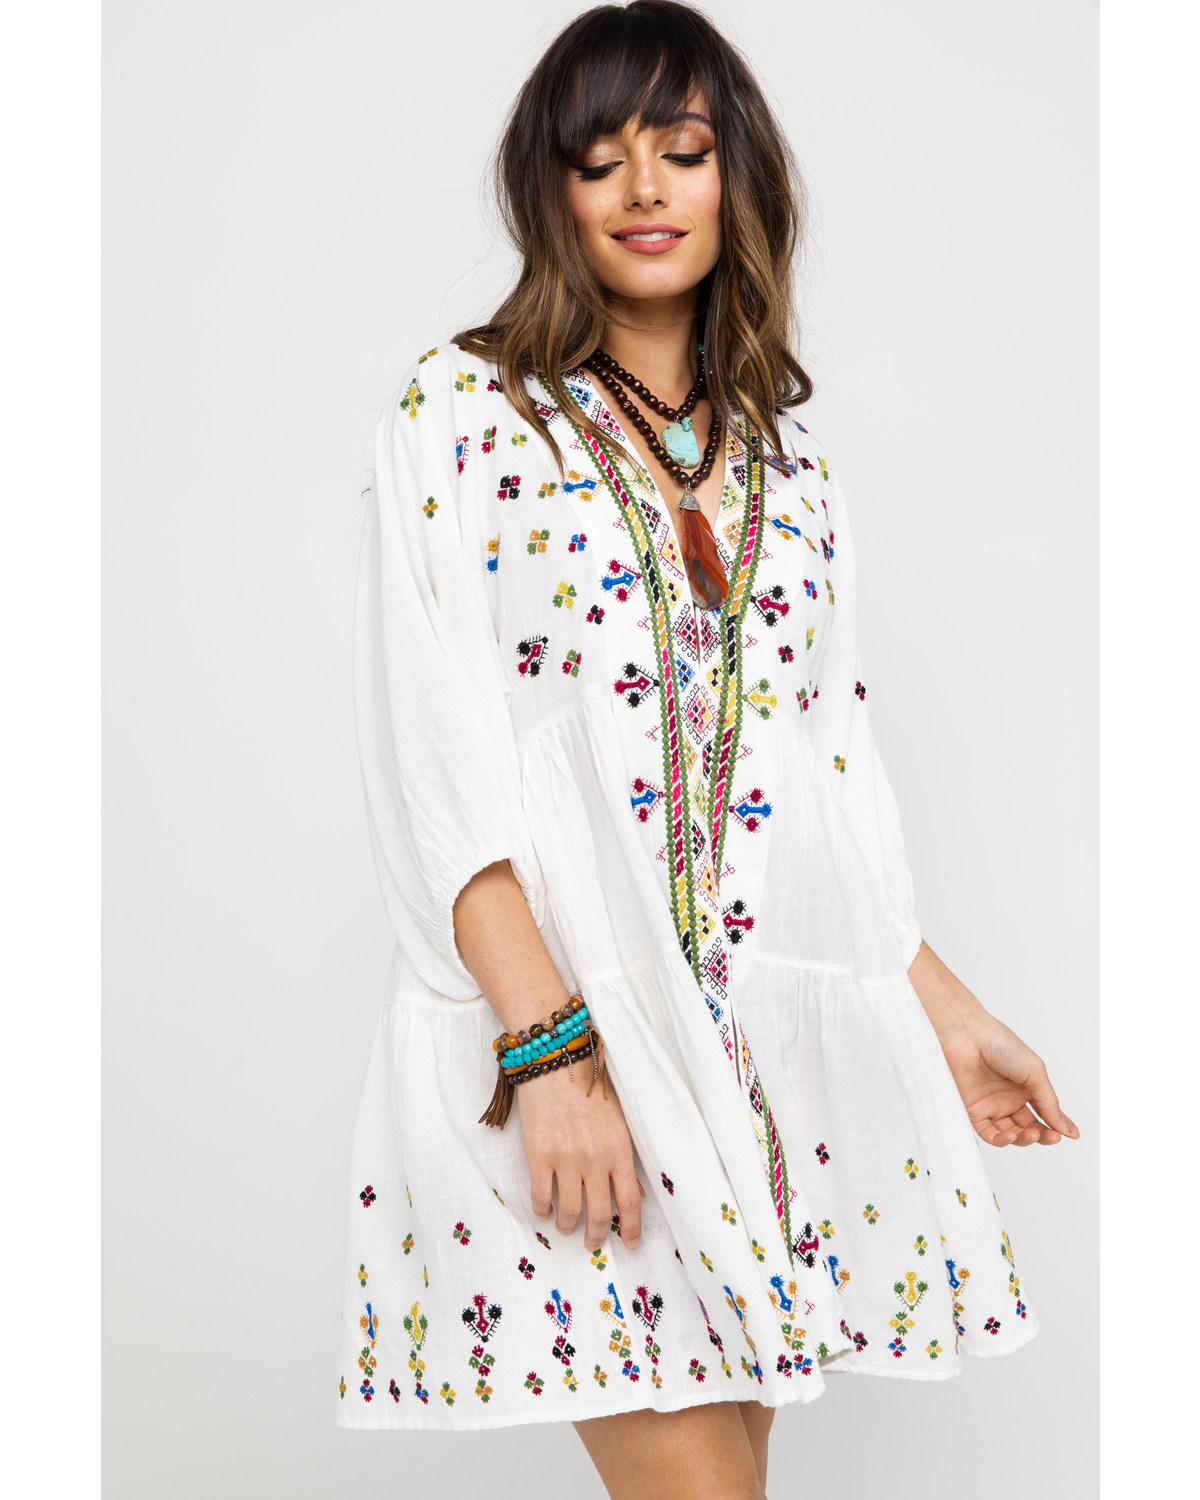 4ee0002021630 Free People Women s Light It Up Embroidered Tunic Top